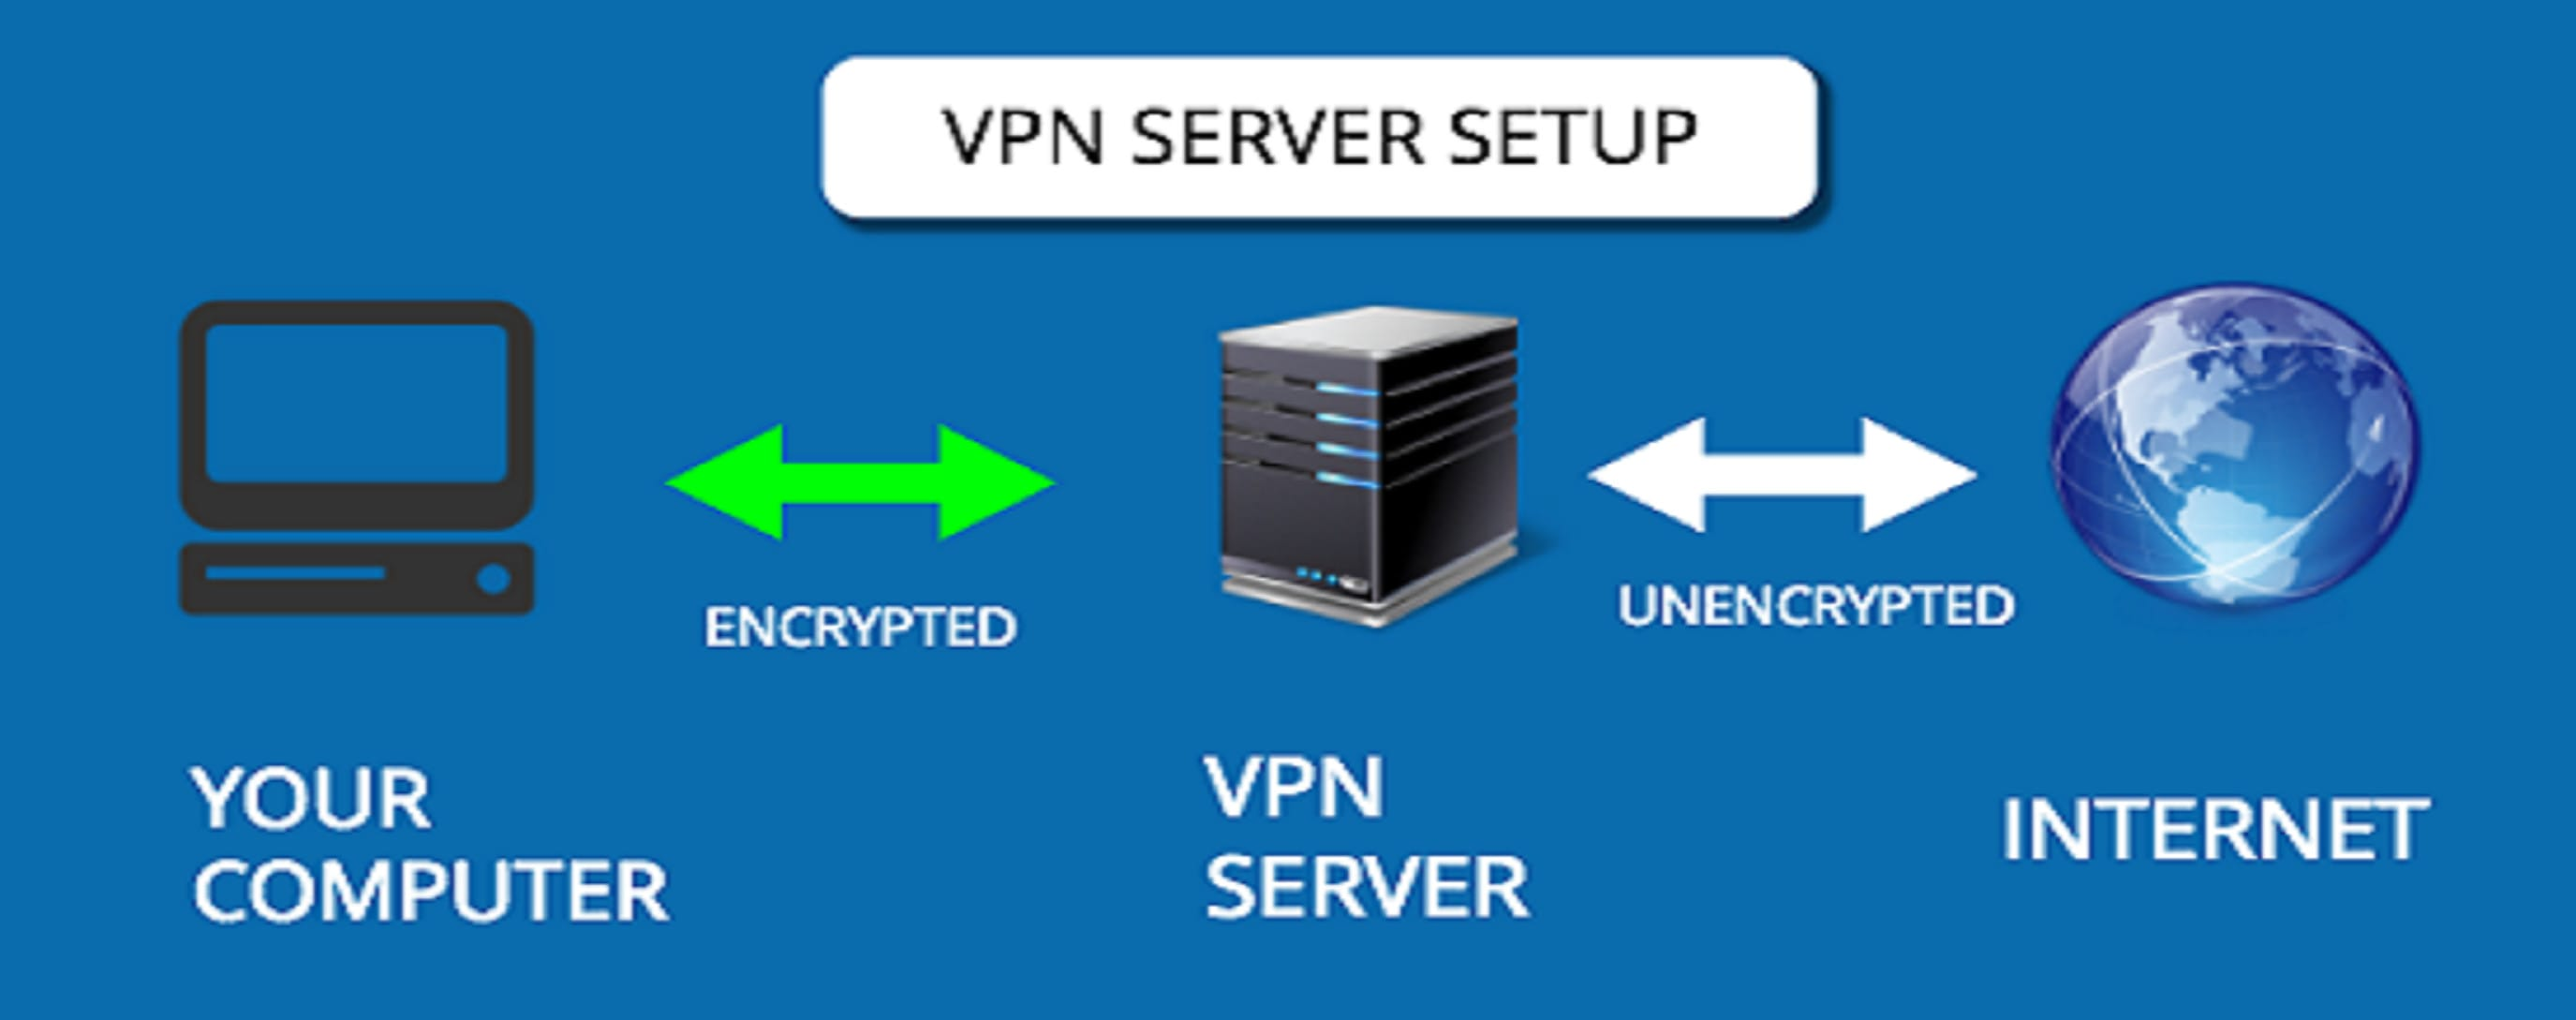 Install Openvpn Openconnect Ipsec Pptp Vpn On Linux By Murshedbd20